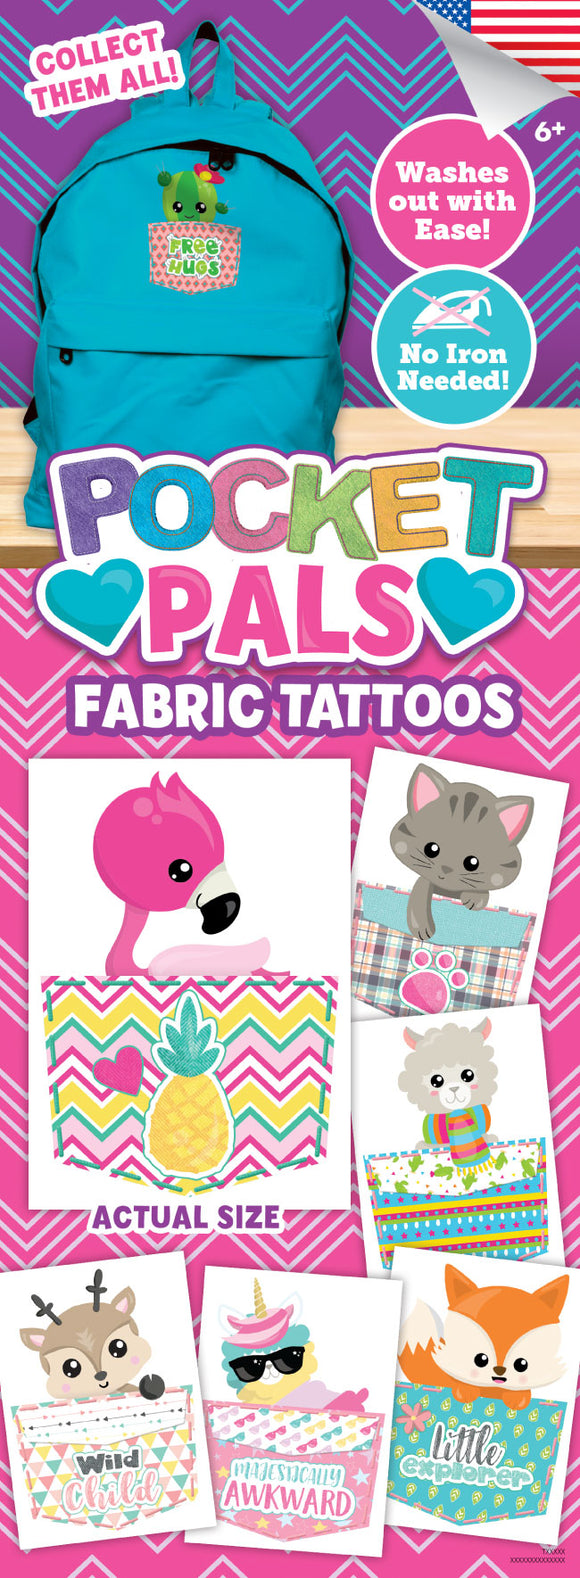 Pocket Pals FABRIC Tattoos